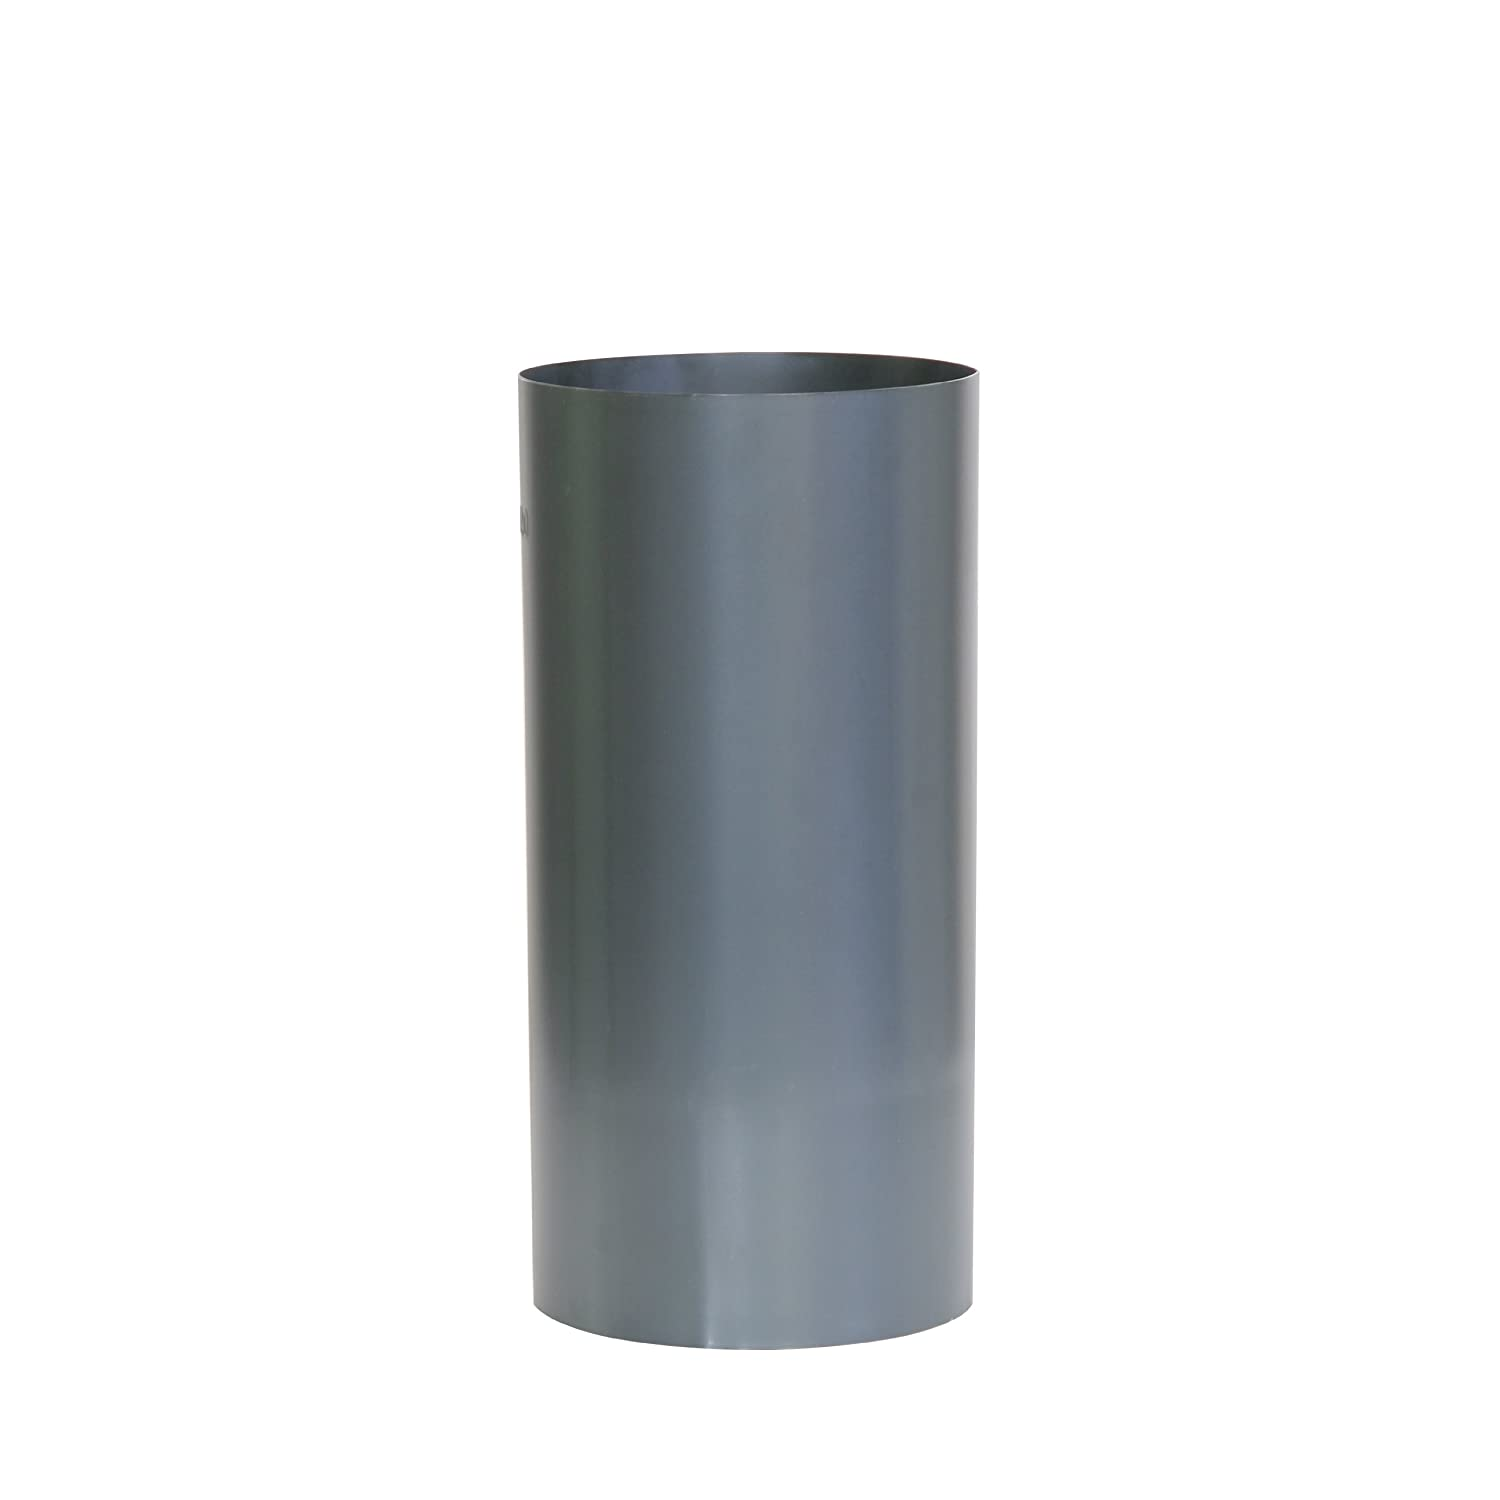 Kamino-Flam Ø 120 mm blue steel, Hot-dip Aluminised (FAL) Steel Stove Pipe, approx. 250 mm Straight Length Chimney Pipe, Flue Pipe for Stoves, Heat Resistant Single Wall Pipe, Silver Kamino - Flam 331545